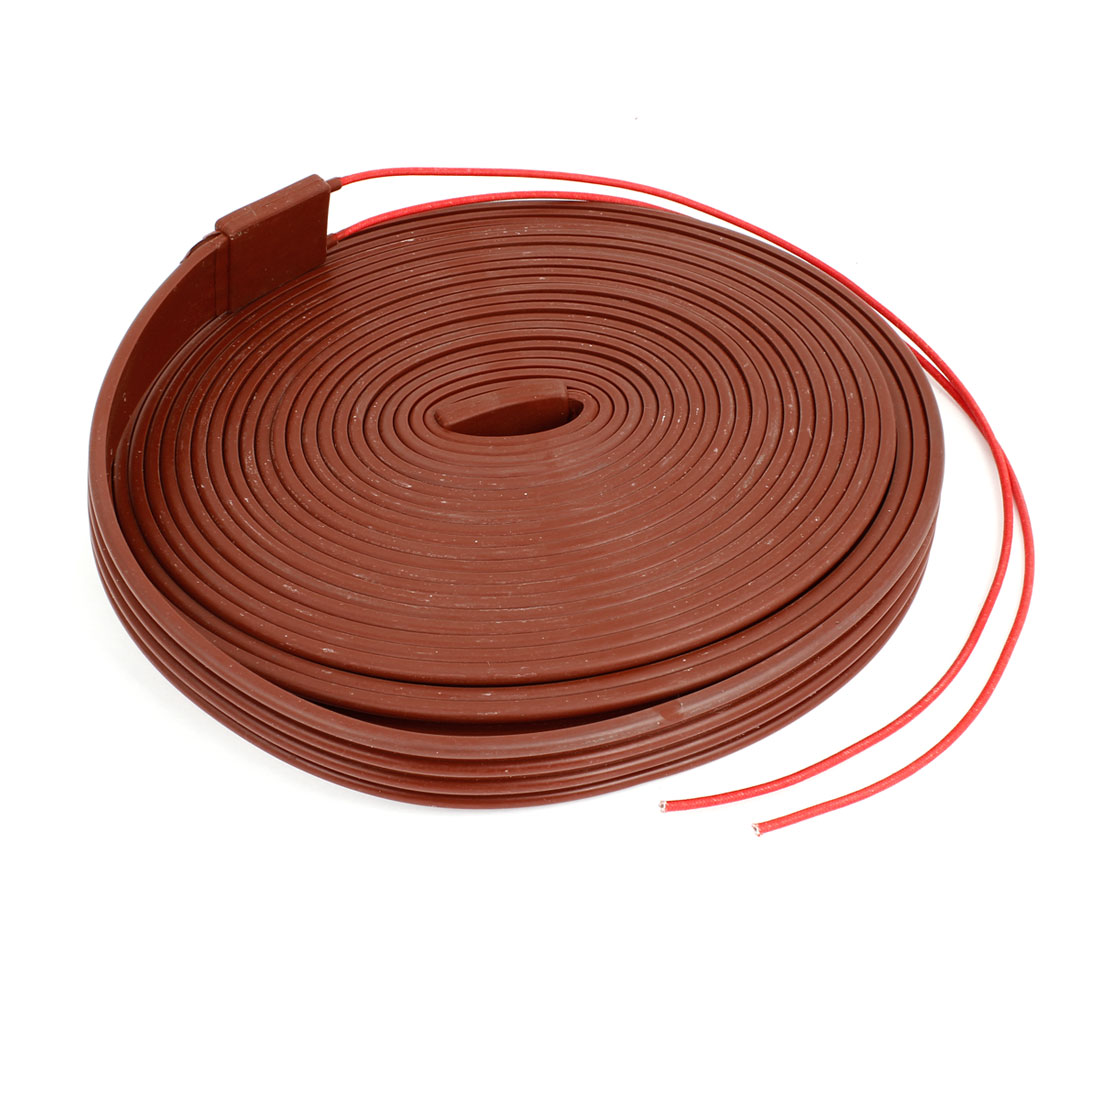 AC 220V Red Freezing Protection Silicone Waterproof Heater Strip 10M x 30mm